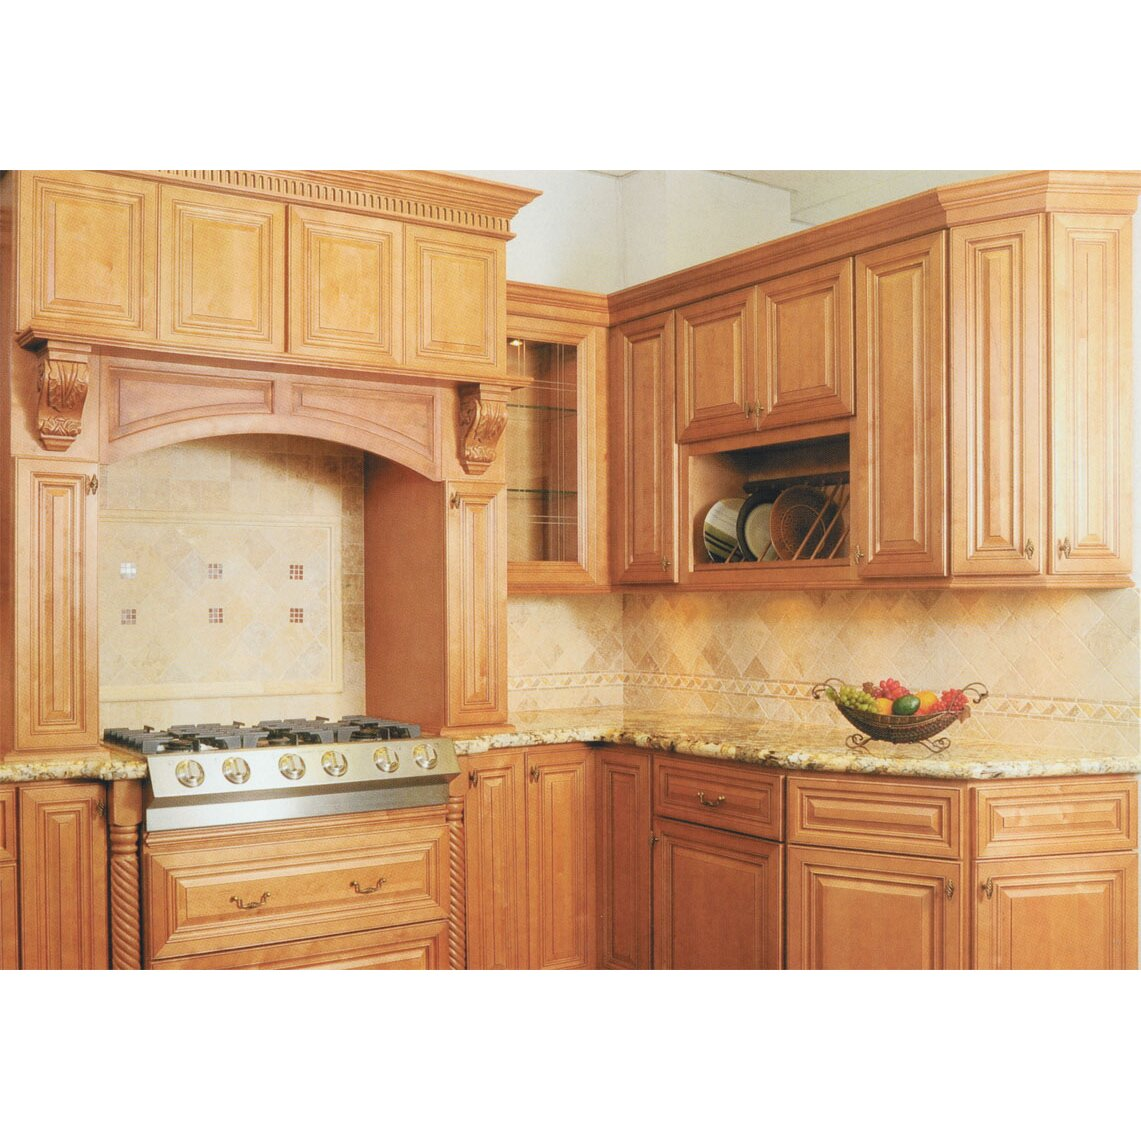 36 inch kitchen cabinets century home living 30 quot x 36 quot kitchen wall cabinet 10216